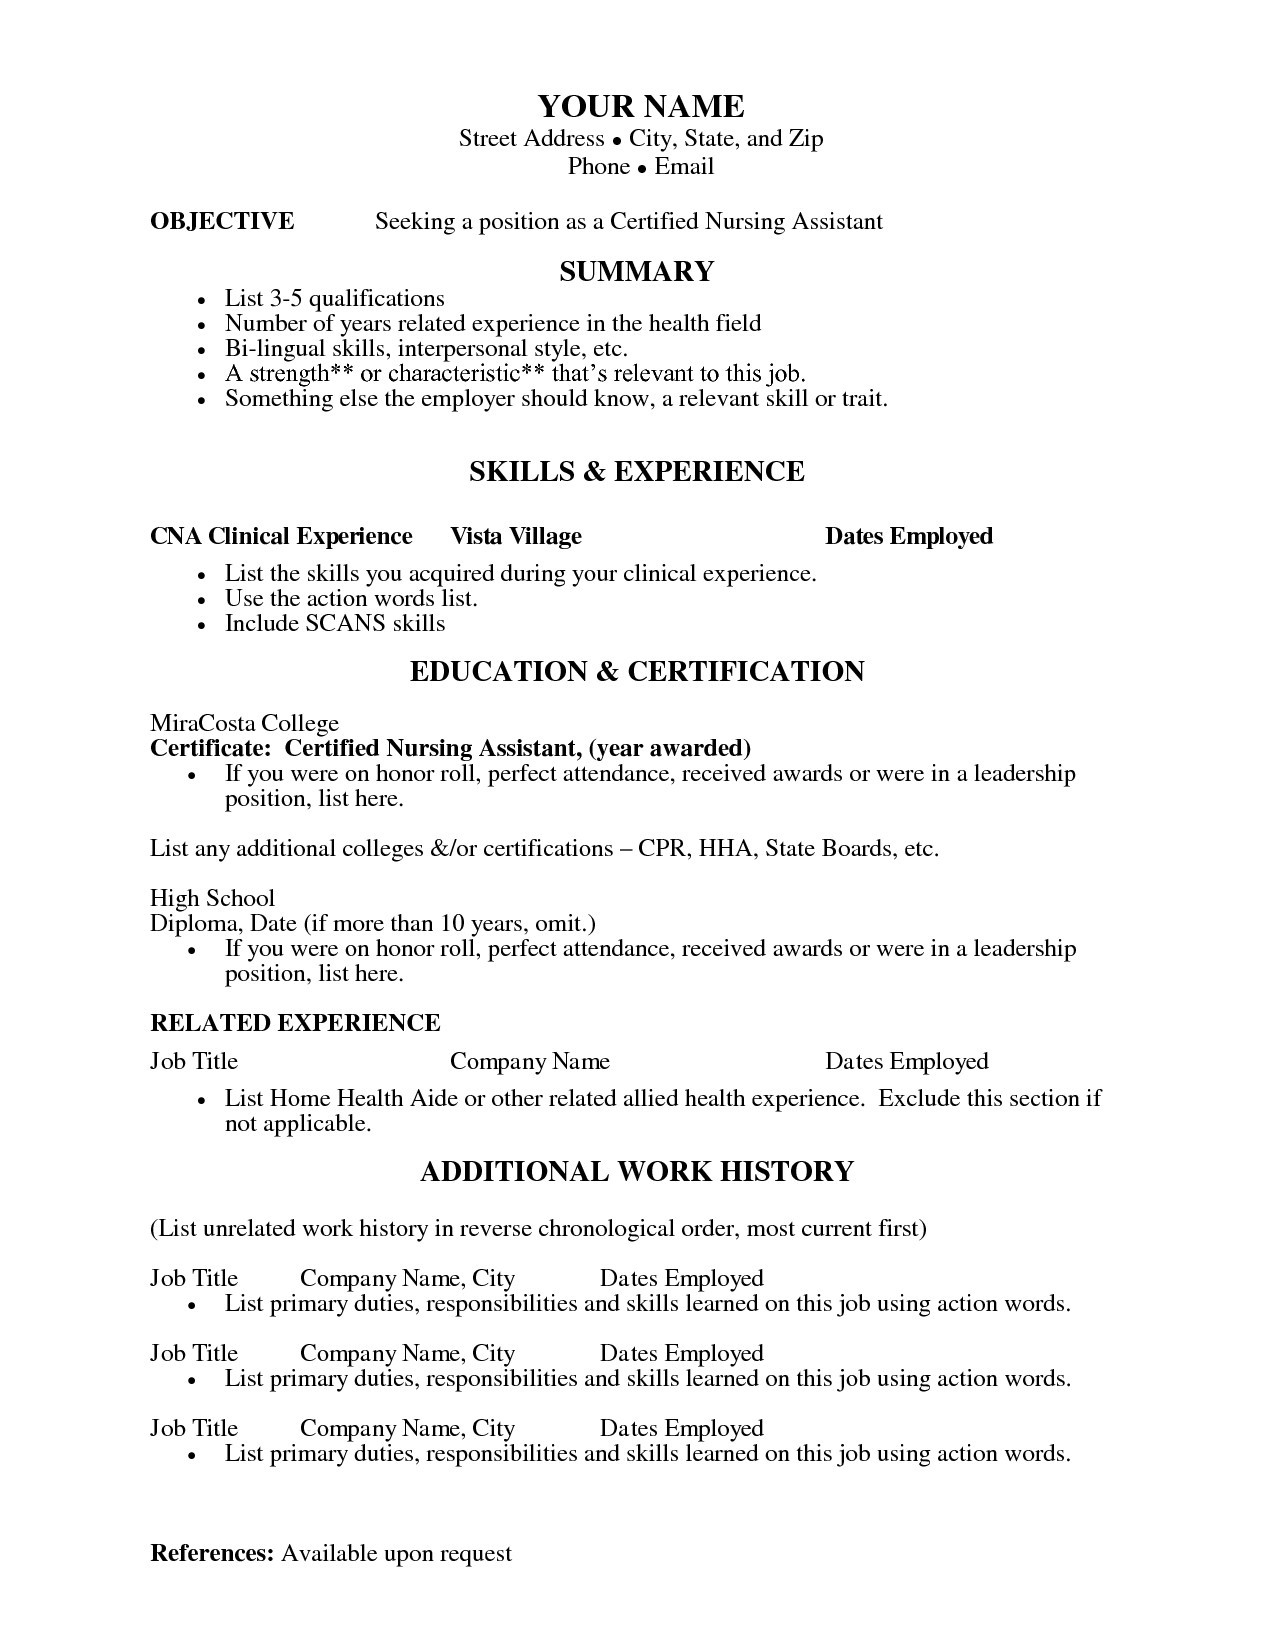 Dialysis Technician Job Description Resume - 16 Dialysis Technician Resume